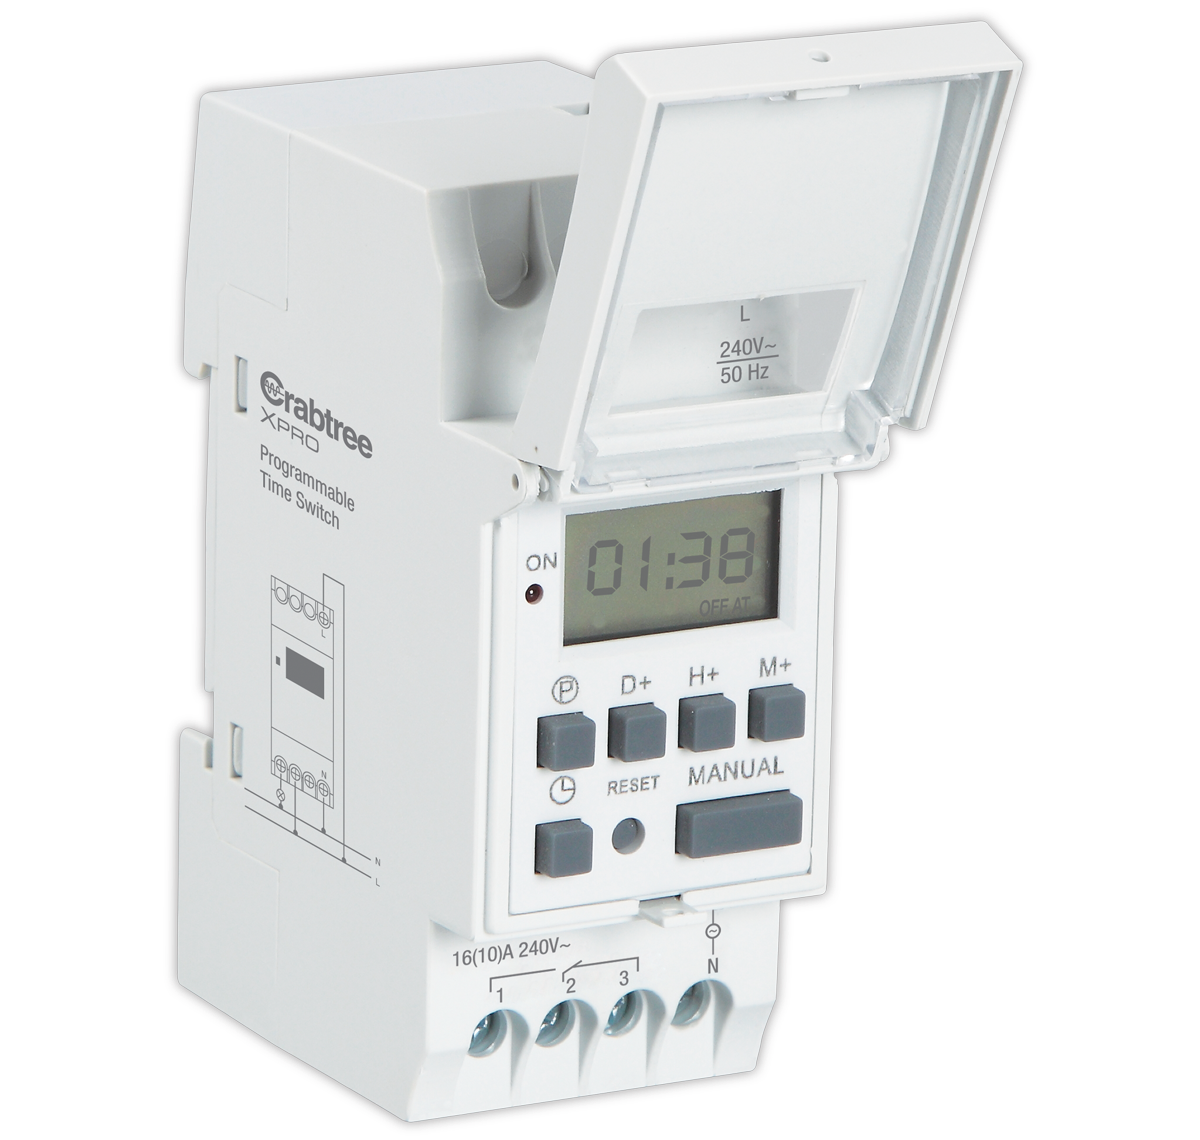 Crabtree - Digital Weekly Programmable Time Switch